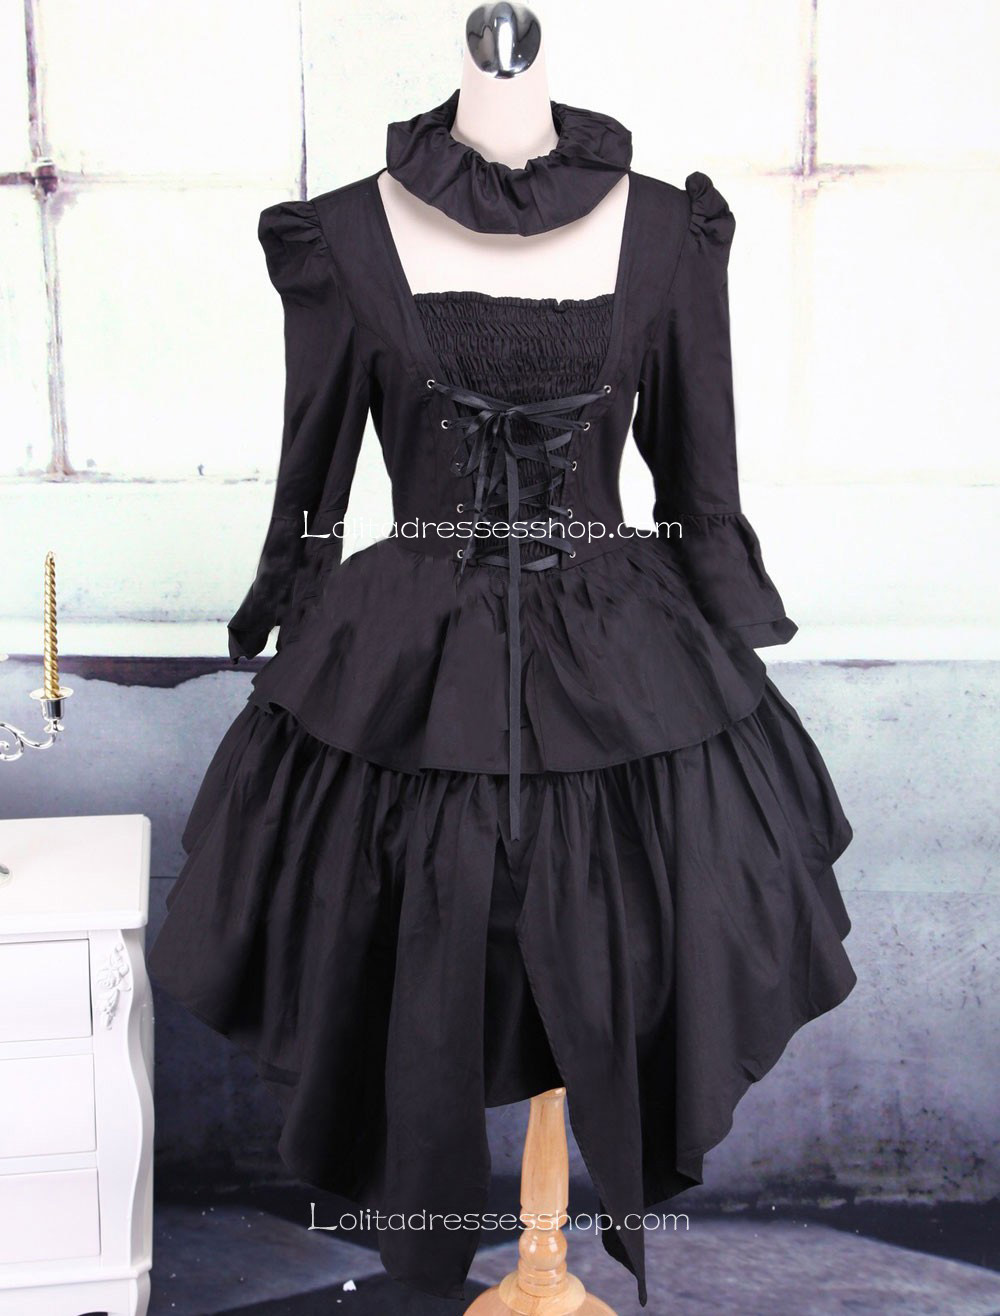 Cheap Japanese Clothes Uk